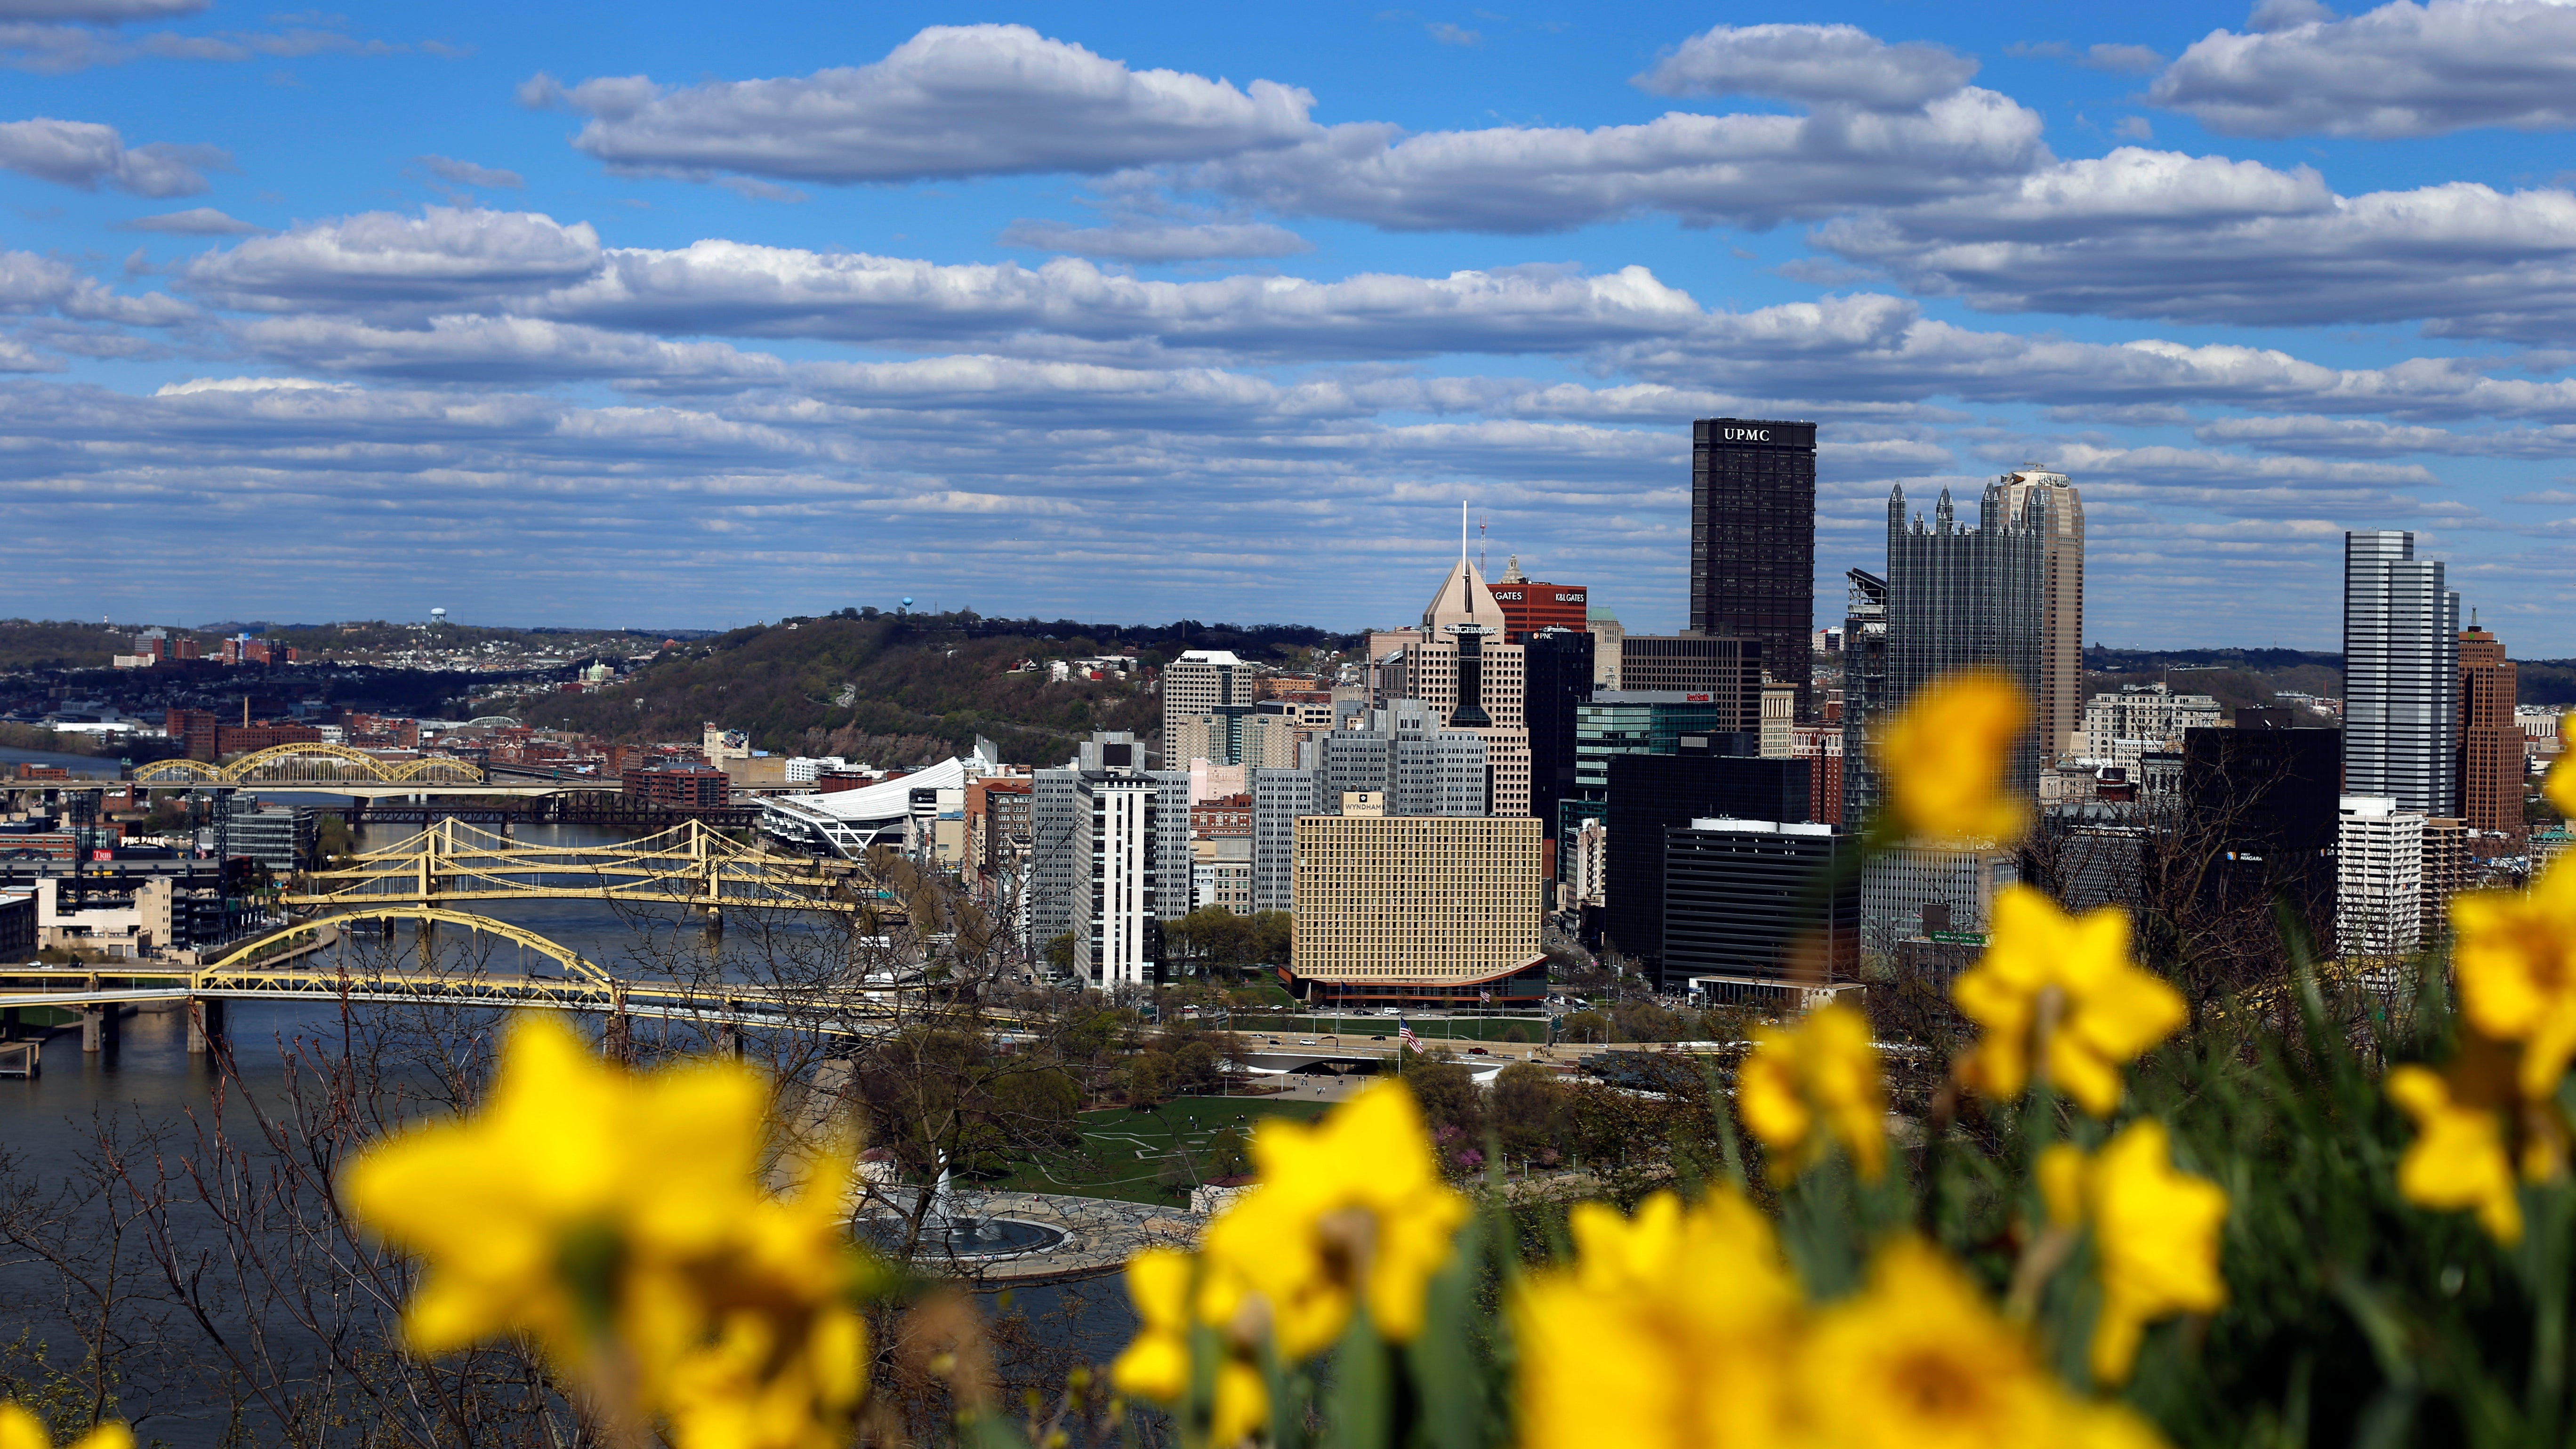 Pittsburgh Is Going Green, But Who Is Getting Left Behind?